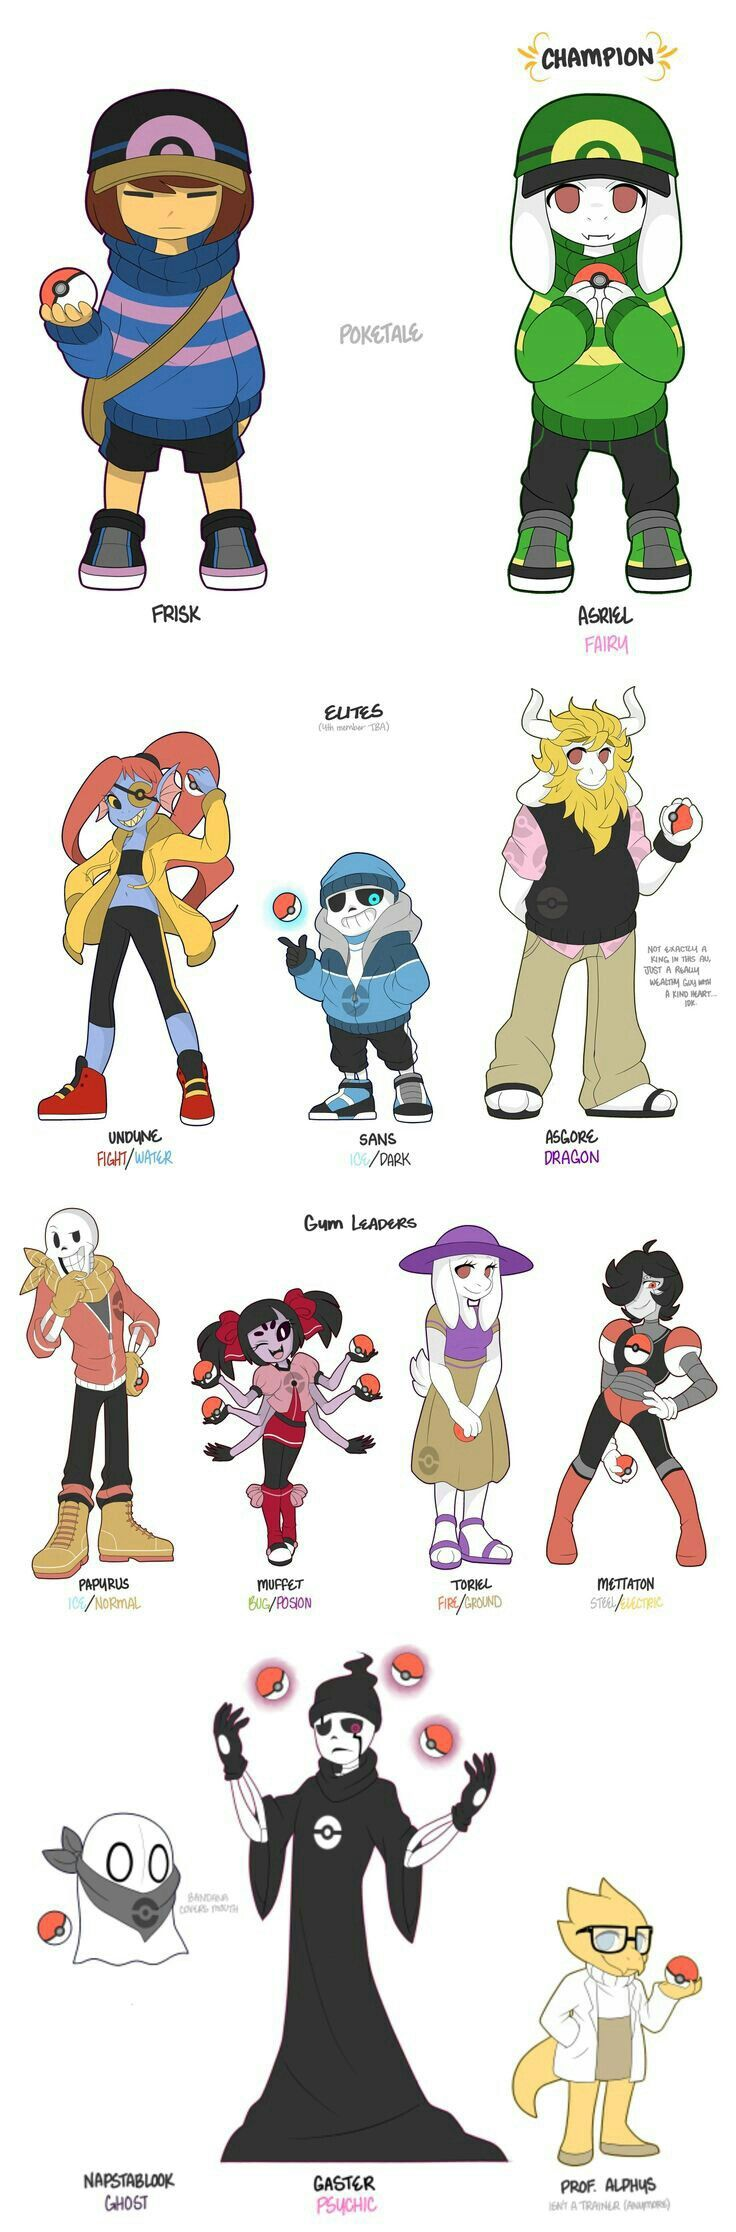 Combine Pokémon and Undertale, I'm a happy as the world could catch on fire and die of happiness.